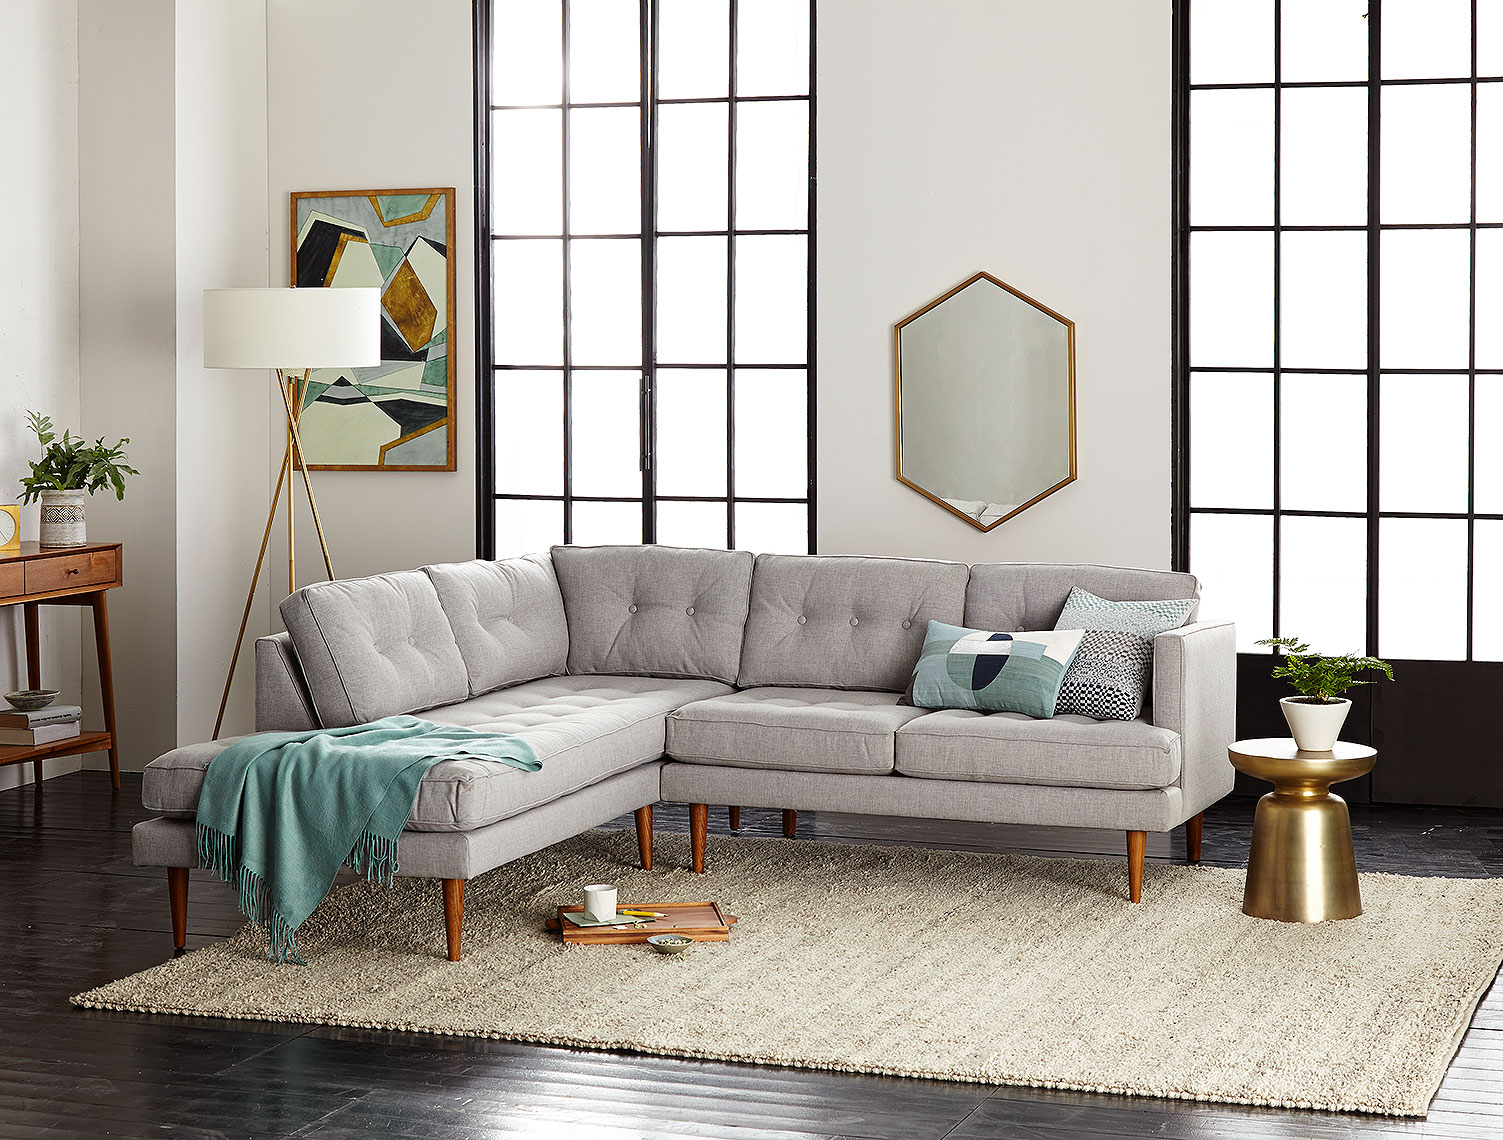 12_ecom-feature-Peggy-Sectional-Lifestyle-hp-sp16-556_YHK1